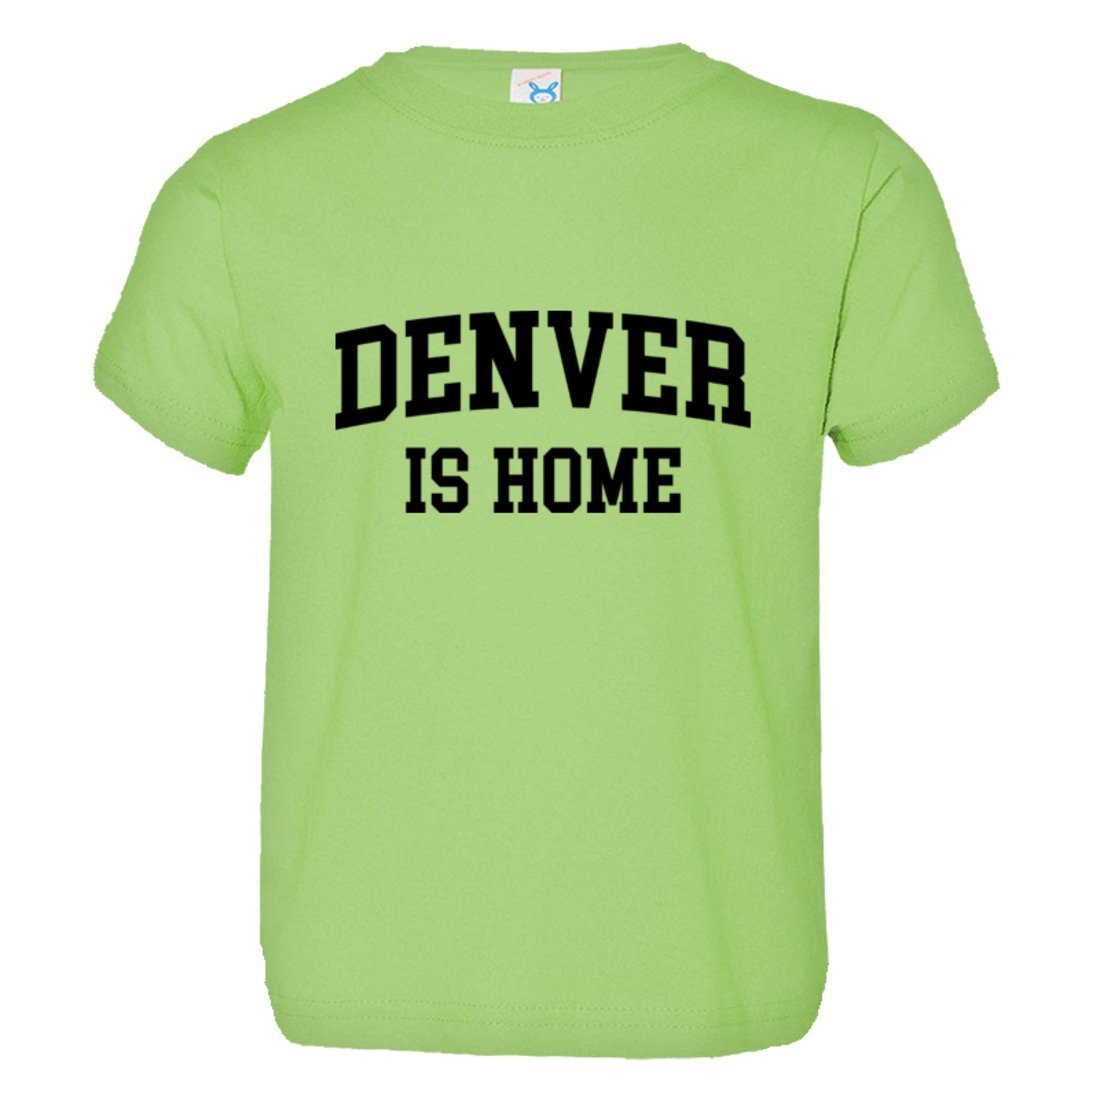 Toddler Denver Colorado CO is Home Born in from HQ Tee Shirt